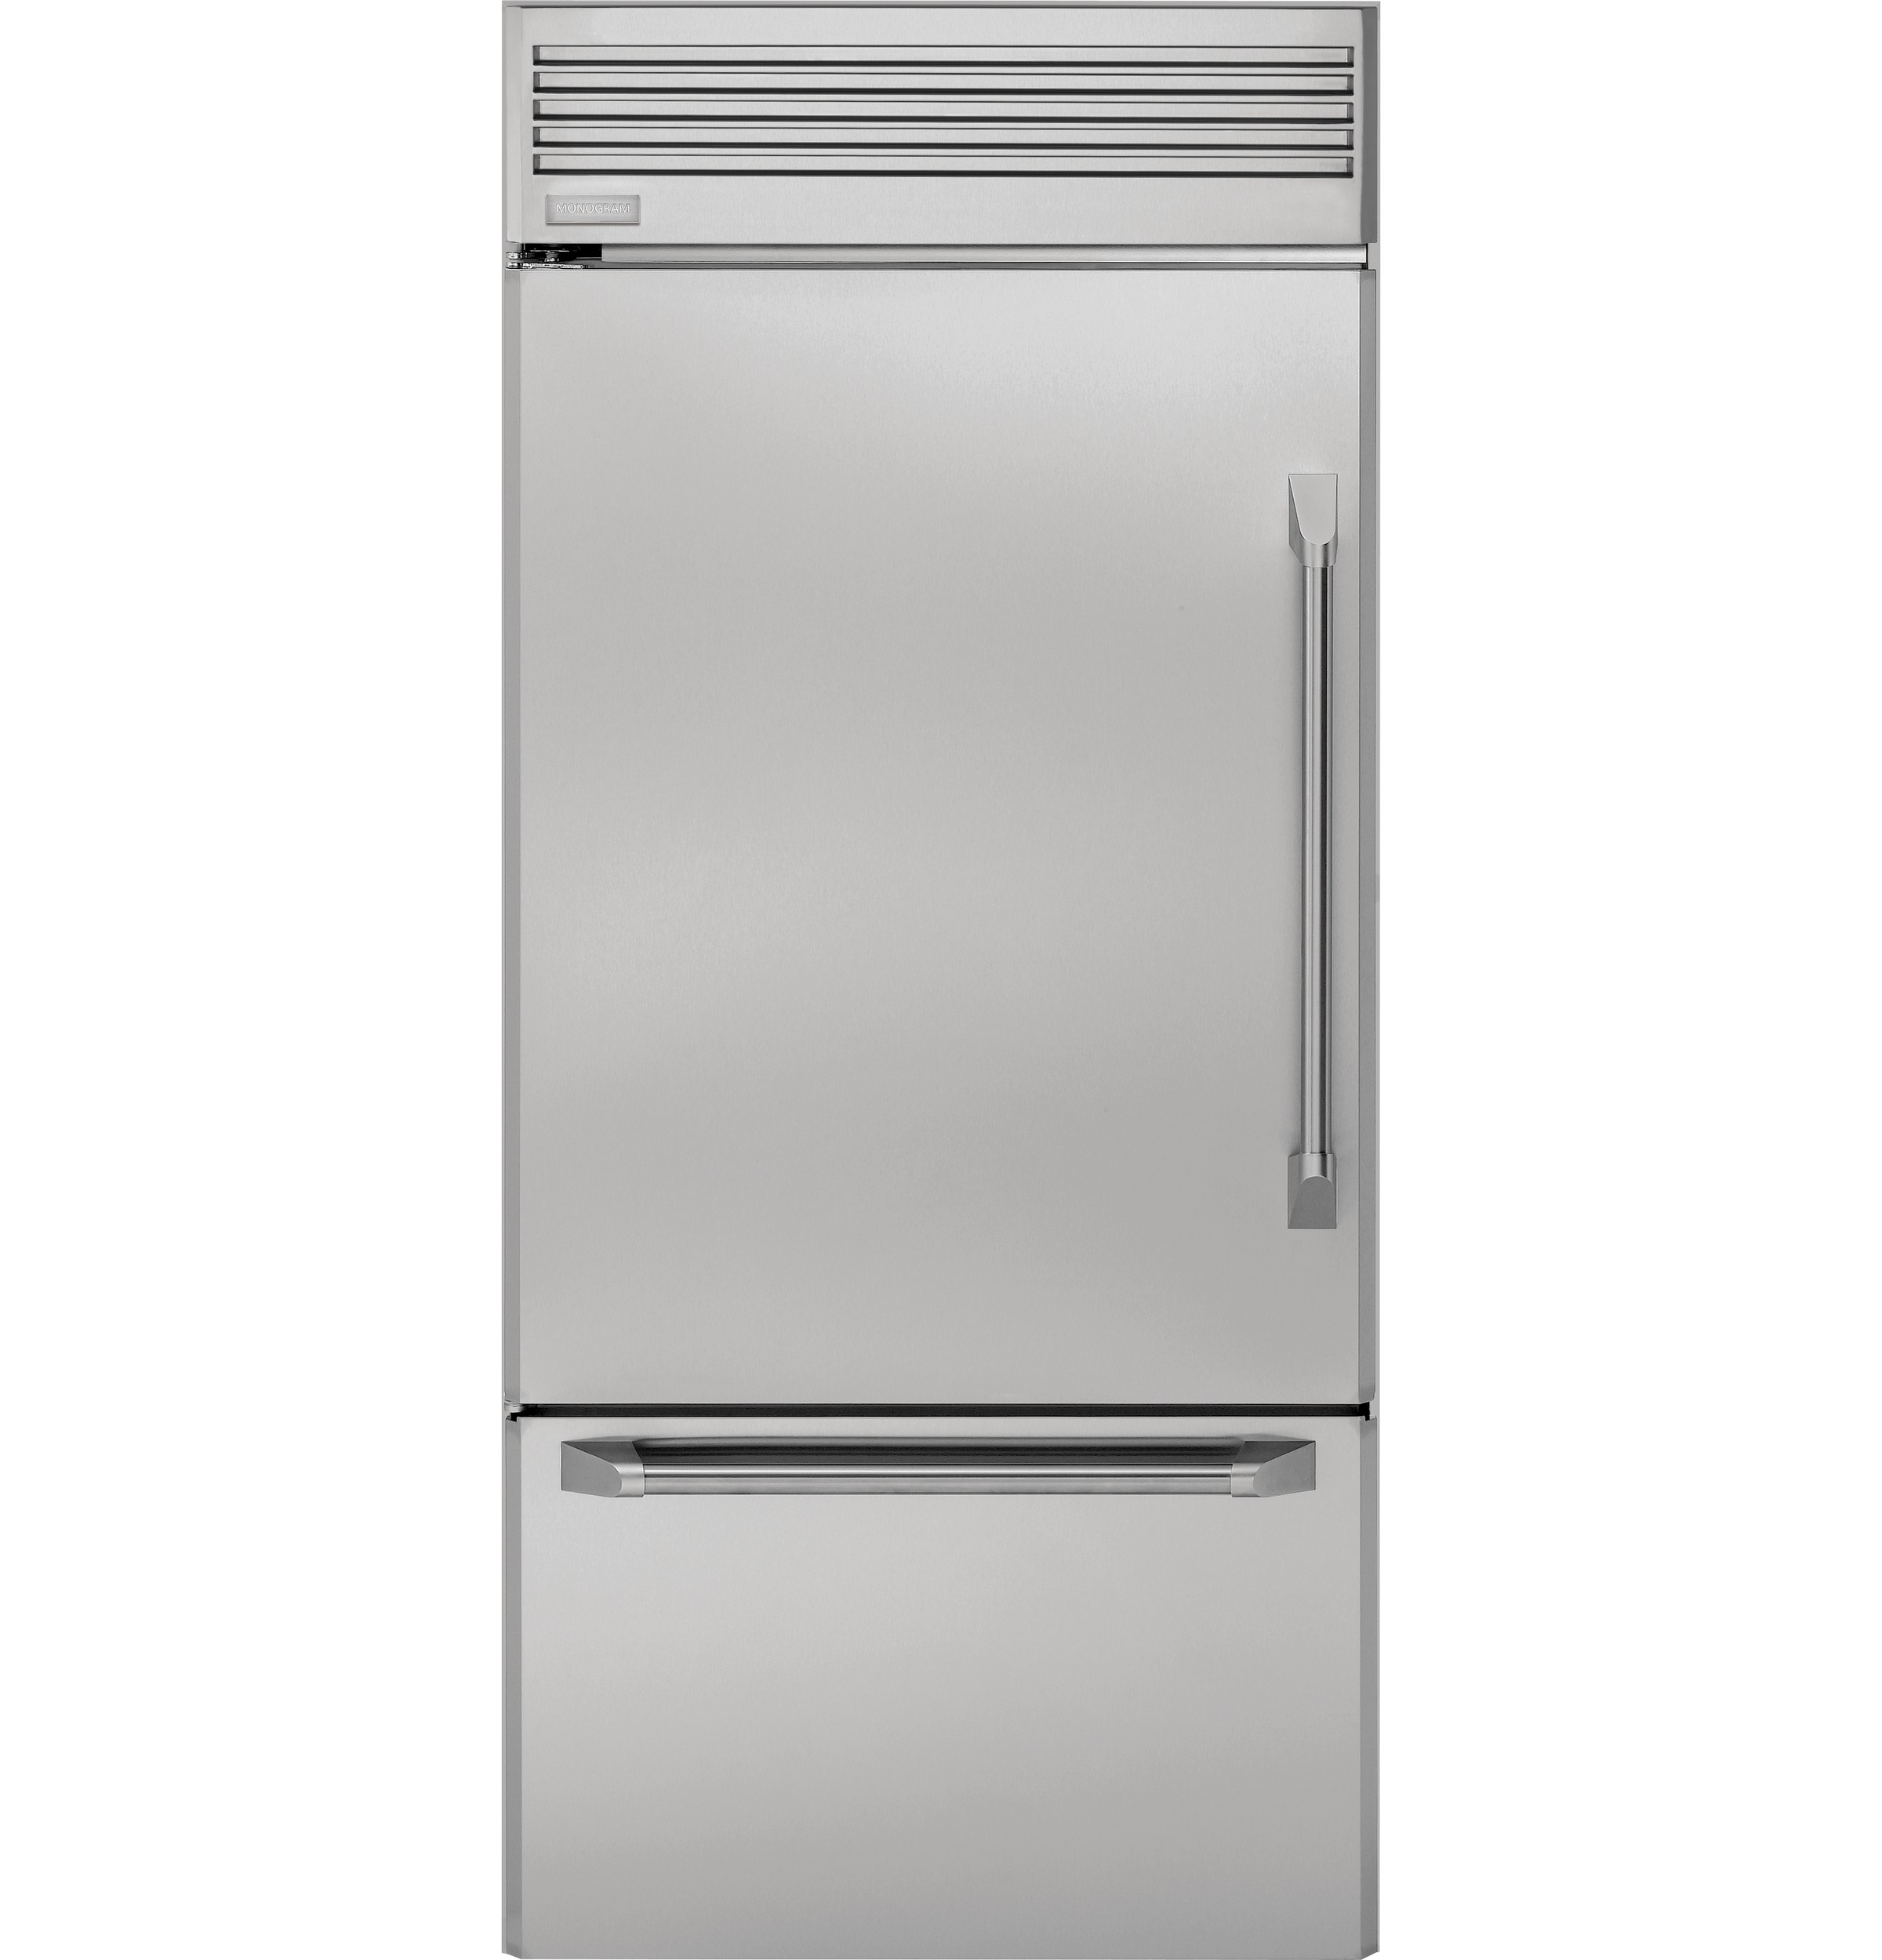 "Monogram Monogram 36"" Professional Built-In Bottom-Freezer Refrigerator"